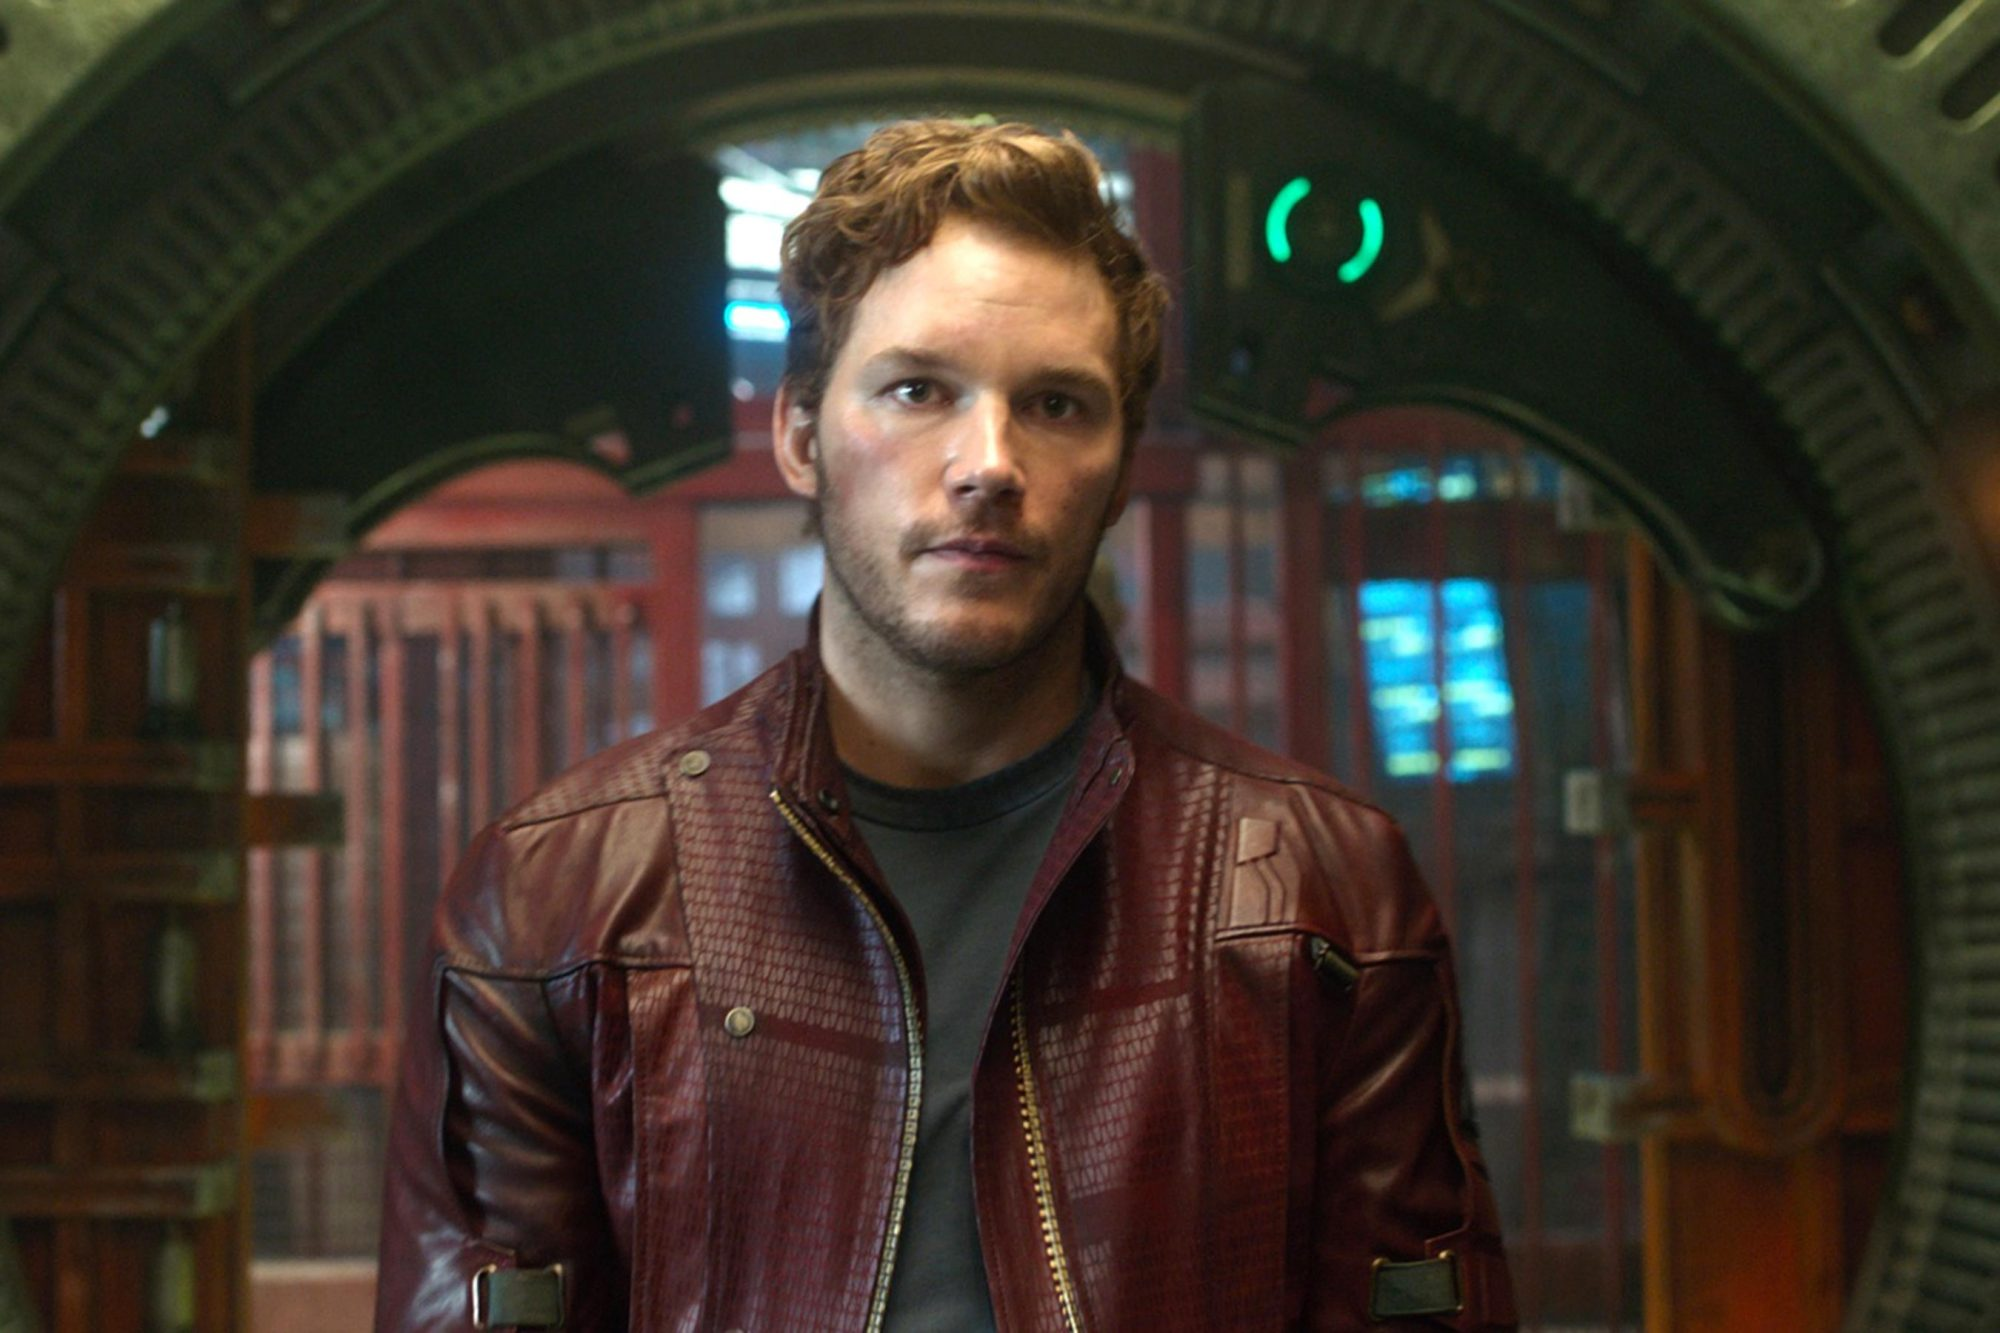 Guardians Of The Galaxy (2014)Peter Quill/Star-Lord (Chris Pratt)